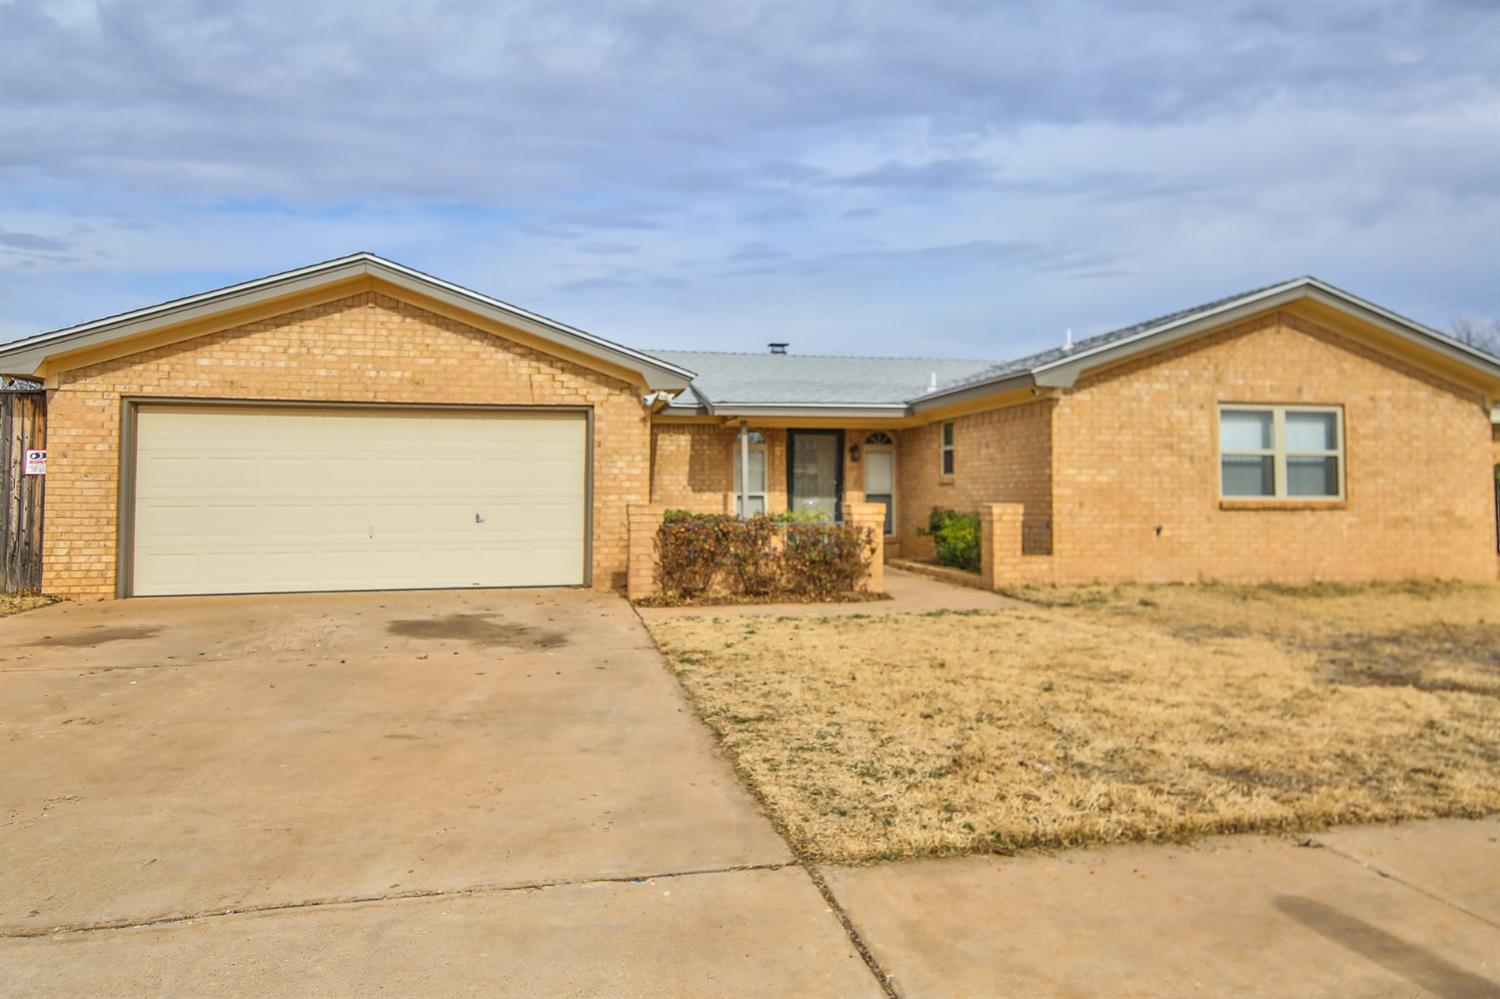 3014 91st Street, Lubbock in Lubbock County, TX 79423 Home for Sale